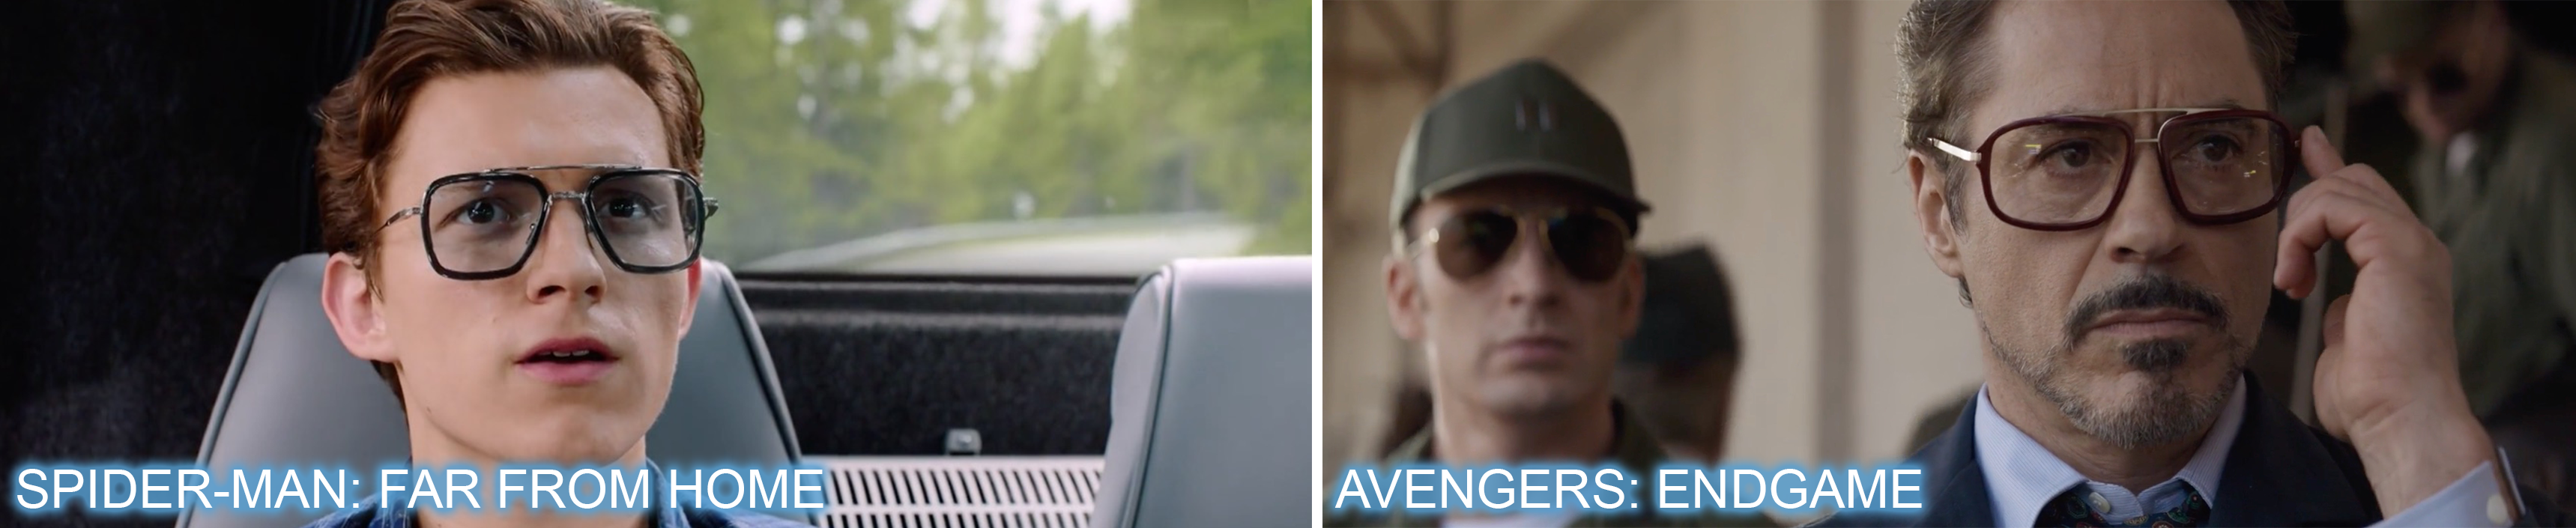 product placement, brands, movies, entertainment marketing, branded integration, brand integration, integration marketing, analysis, valuation, metrics, measurement, dita, glasses, sunglasses, robert downey jr, tom holland, avengers endgame, spiderman, spider-man, far from home